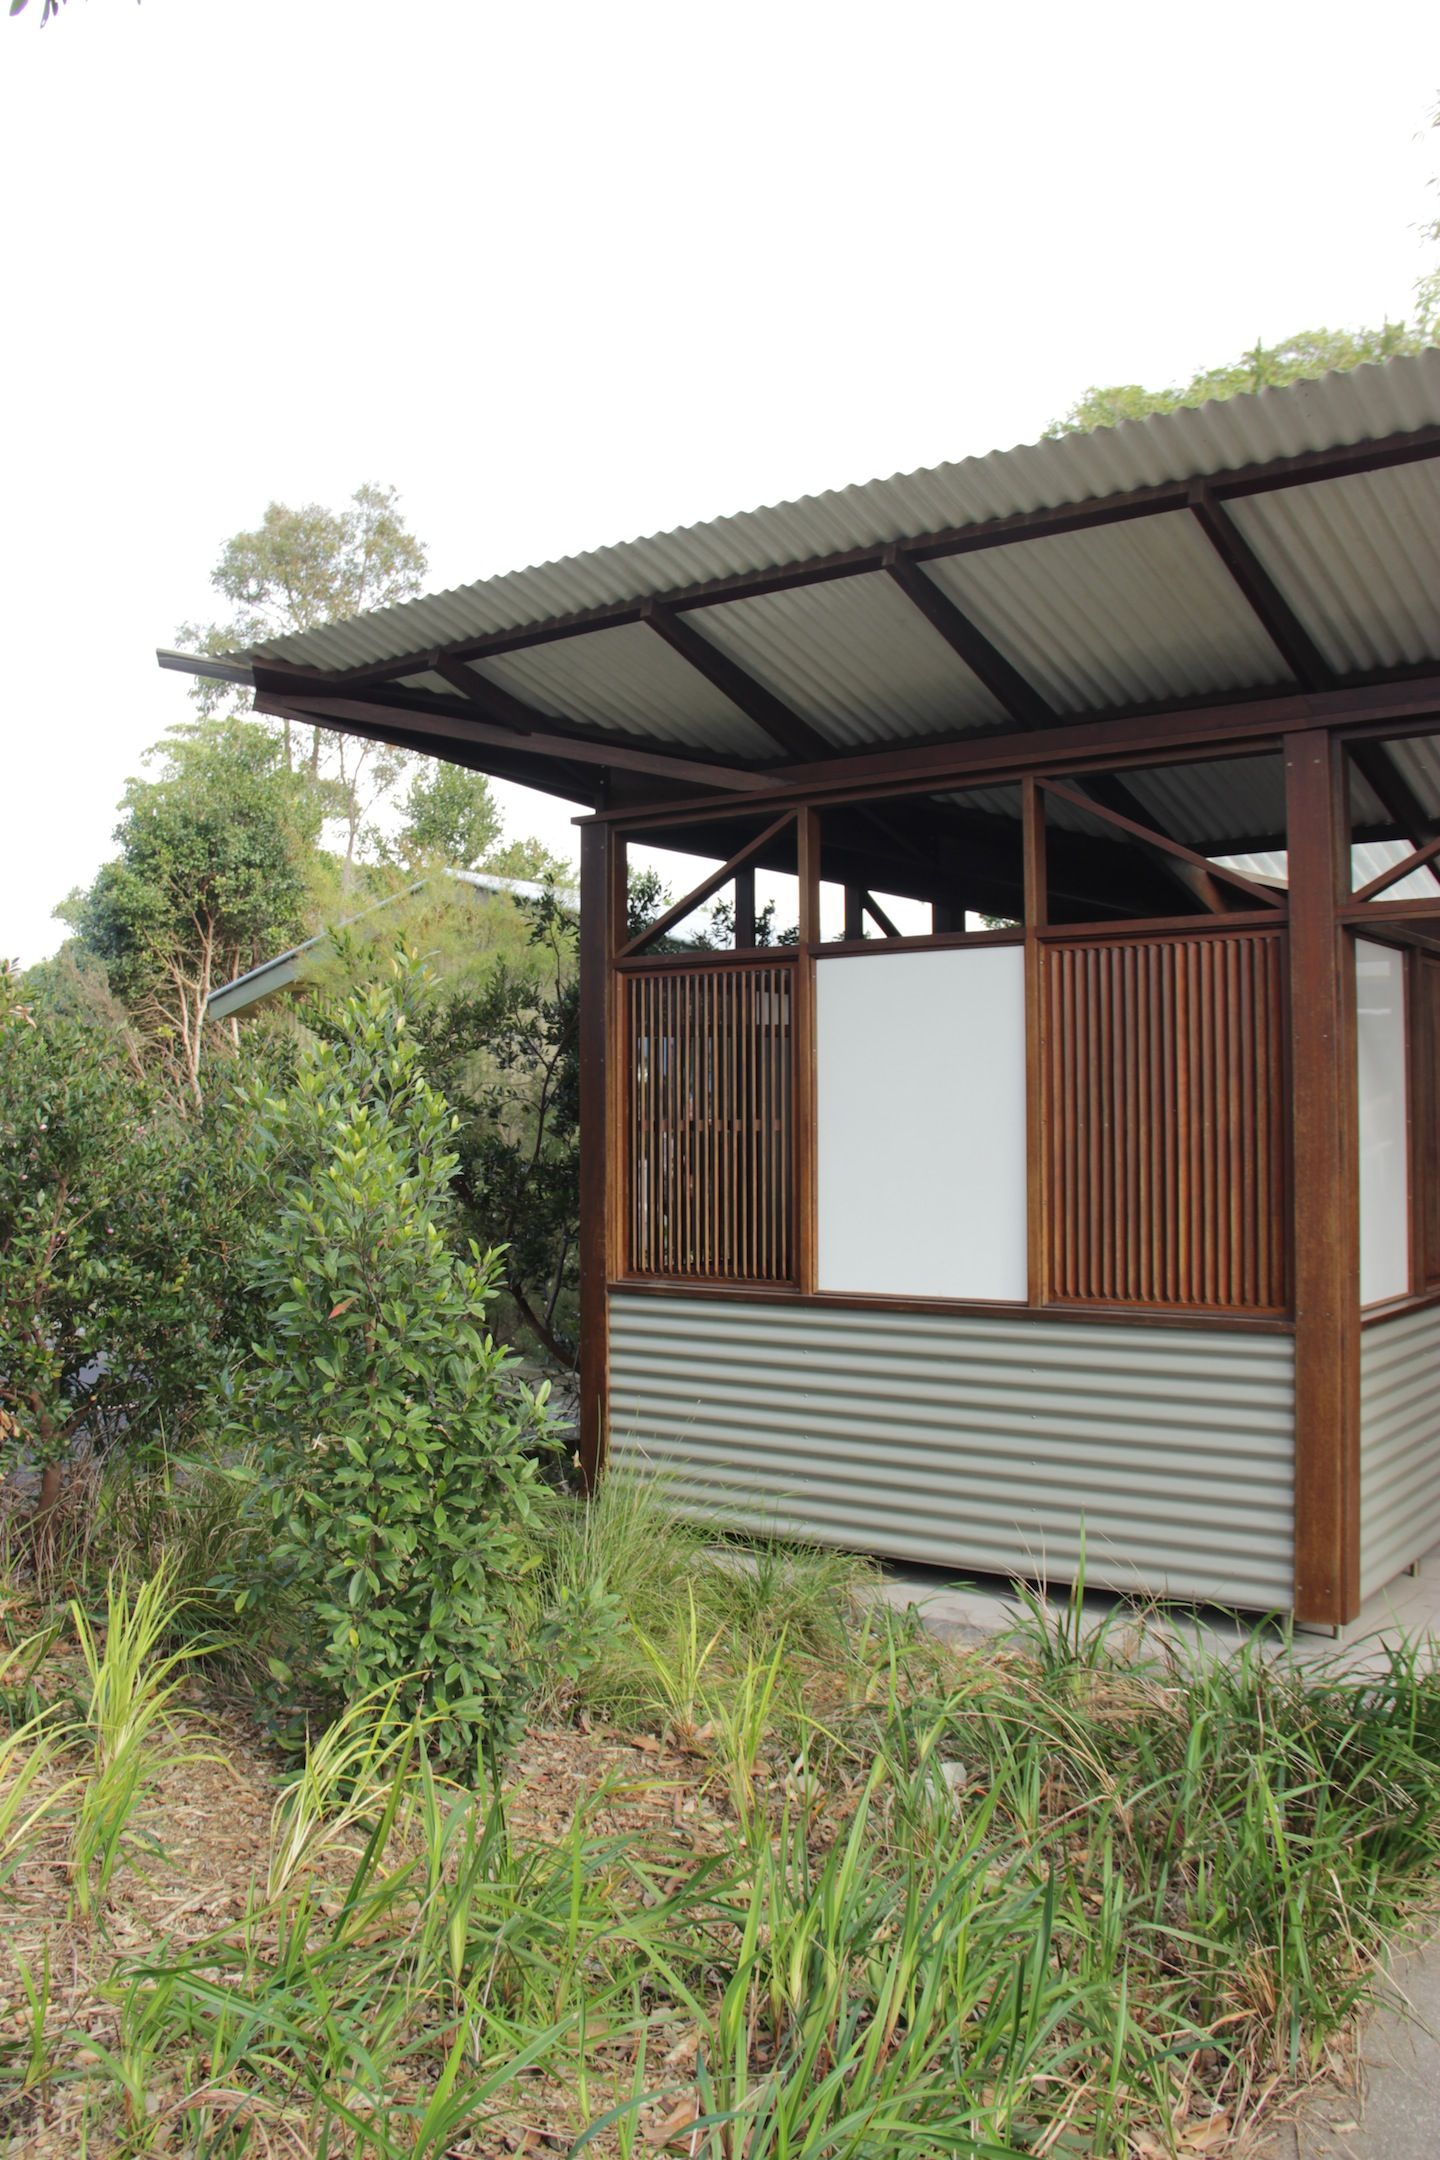 Best Simple Roof Overhangs With Just Corrugated Iron Exposed 400 x 300